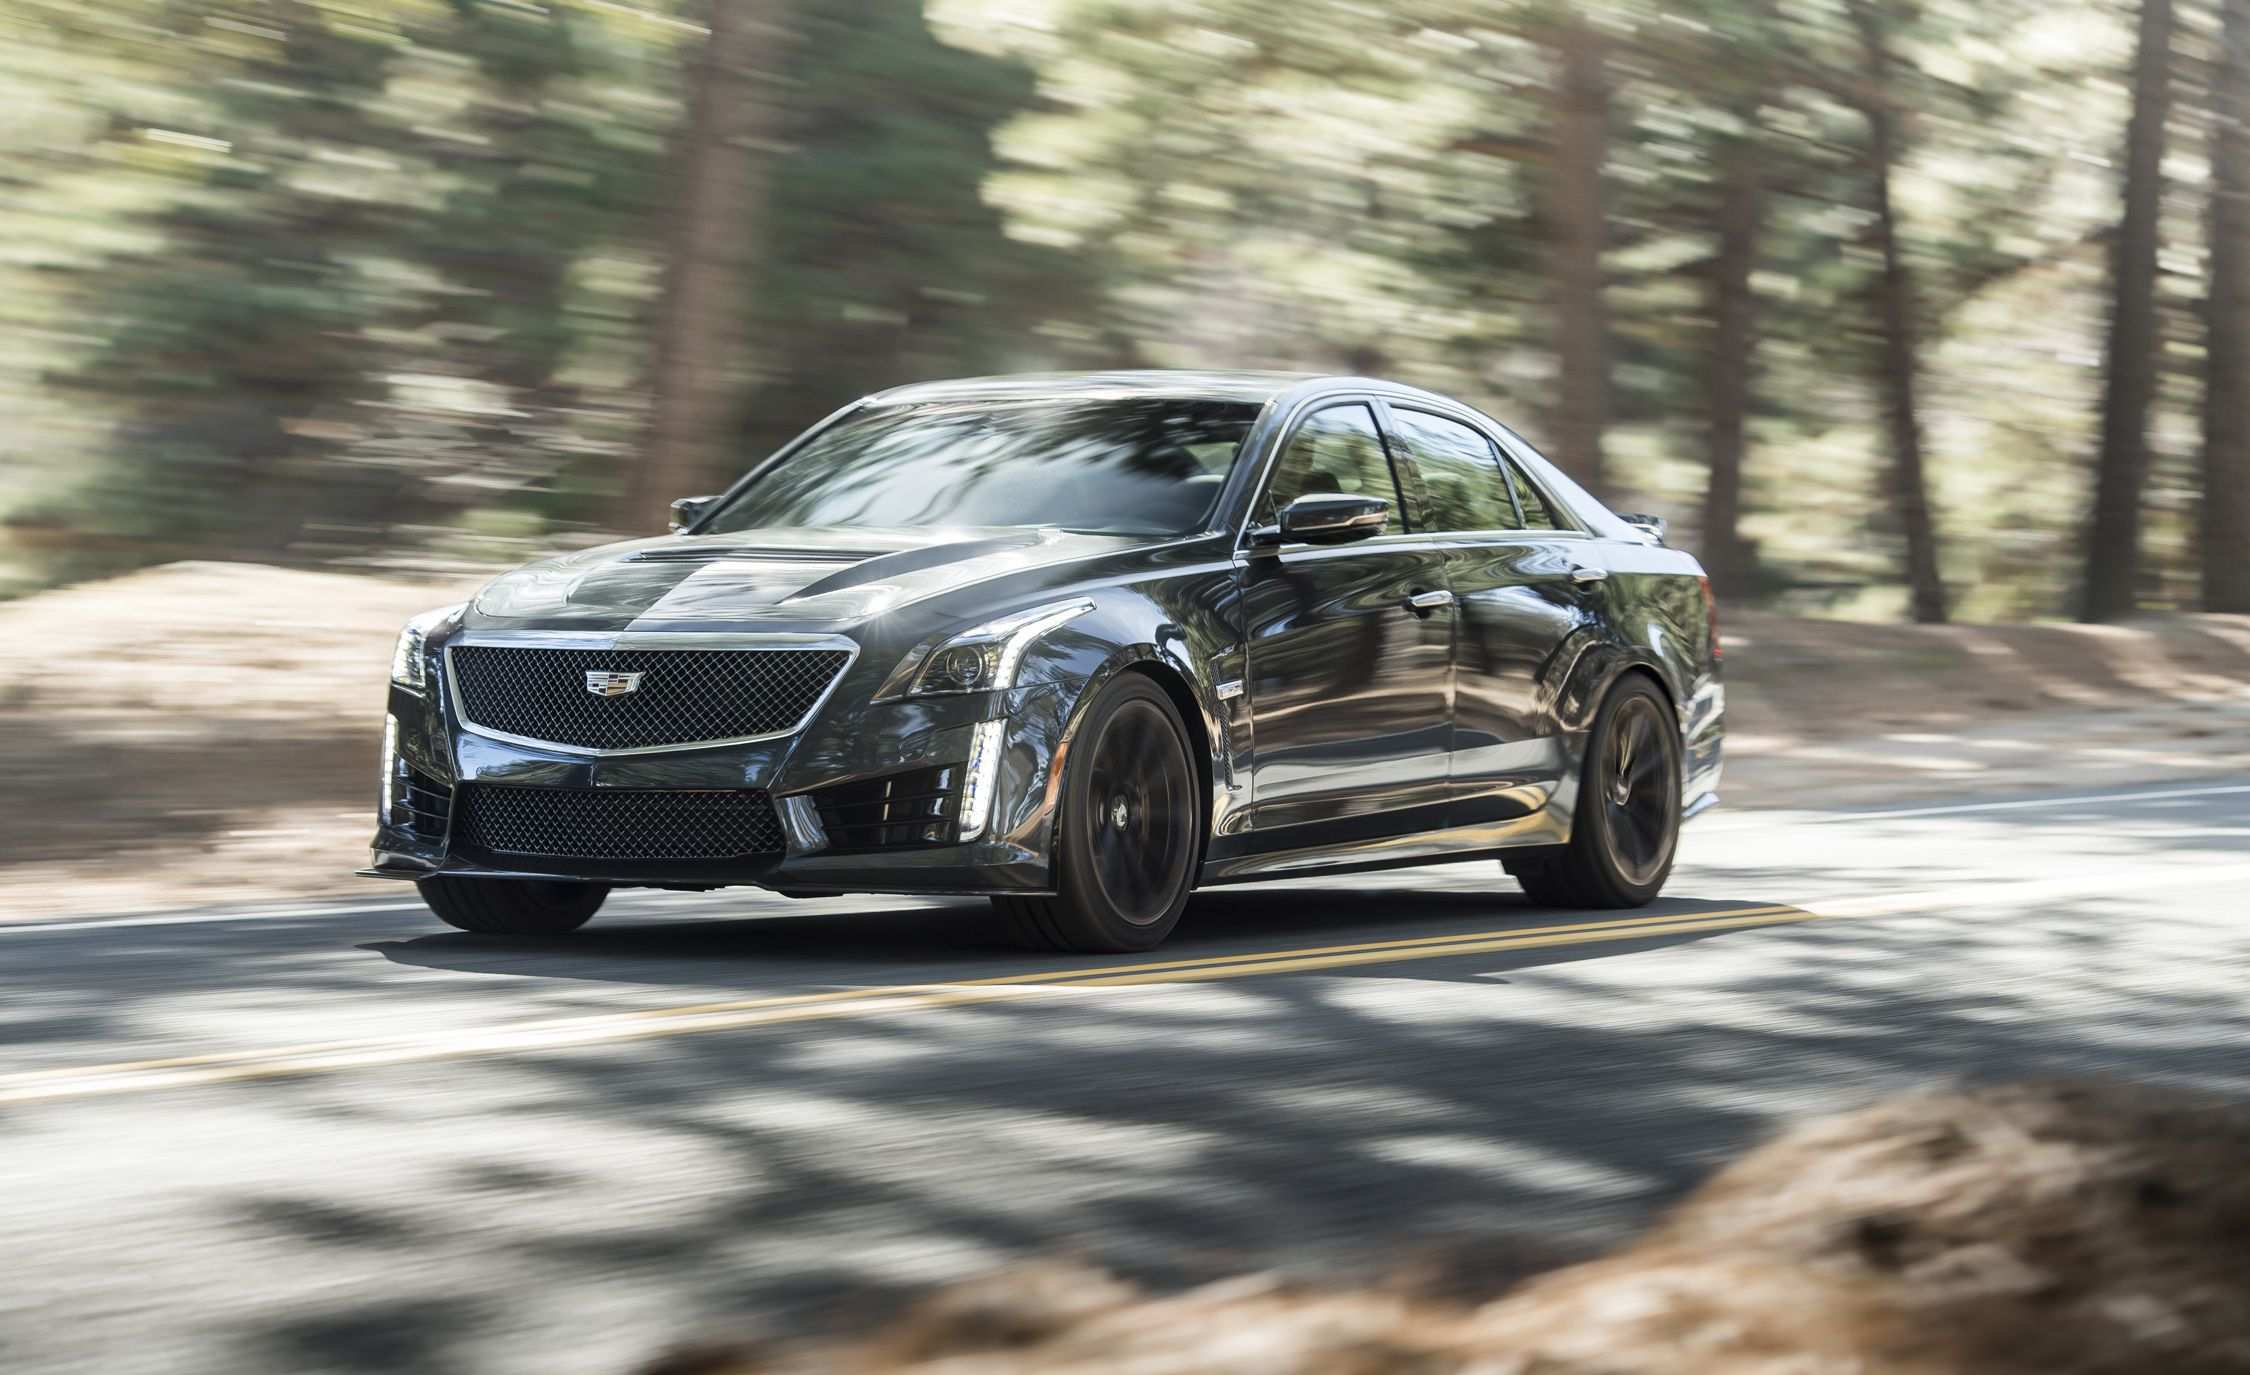 26 Best Review New 2019 Cadillac Cts V Hp First Drive Configurations for New 2019 Cadillac Cts V Hp First Drive